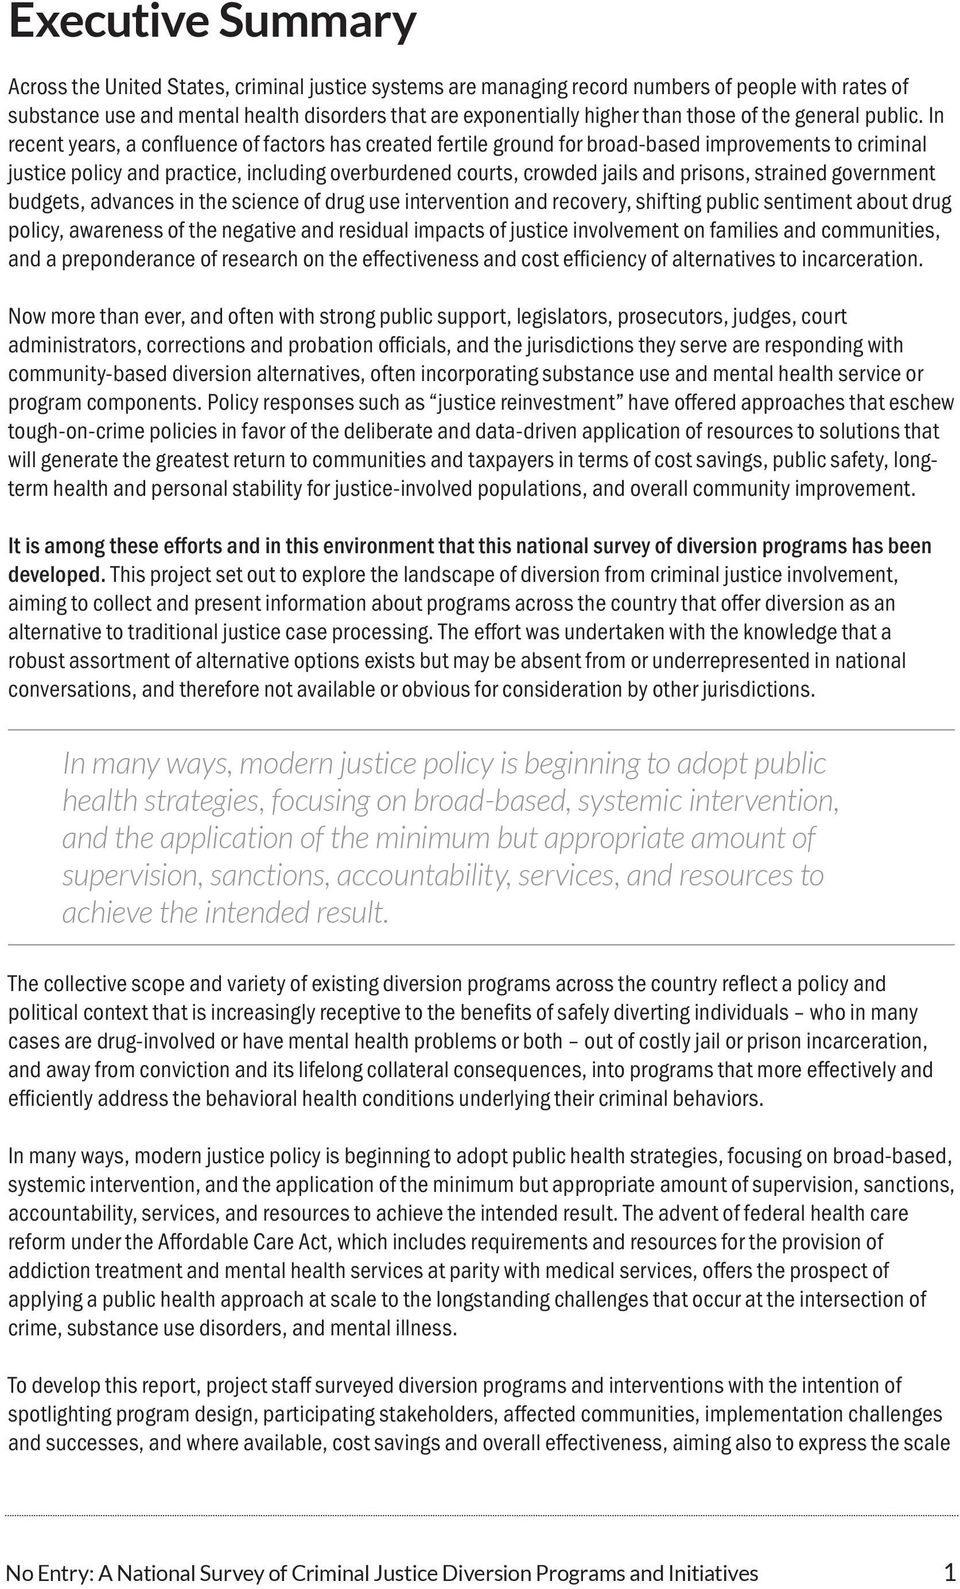 In recent years, a confluence of factors has created fertile ground for broad-based improvements to criminal justice policy and practice, including overburdened courts, crowded jails and prisons,